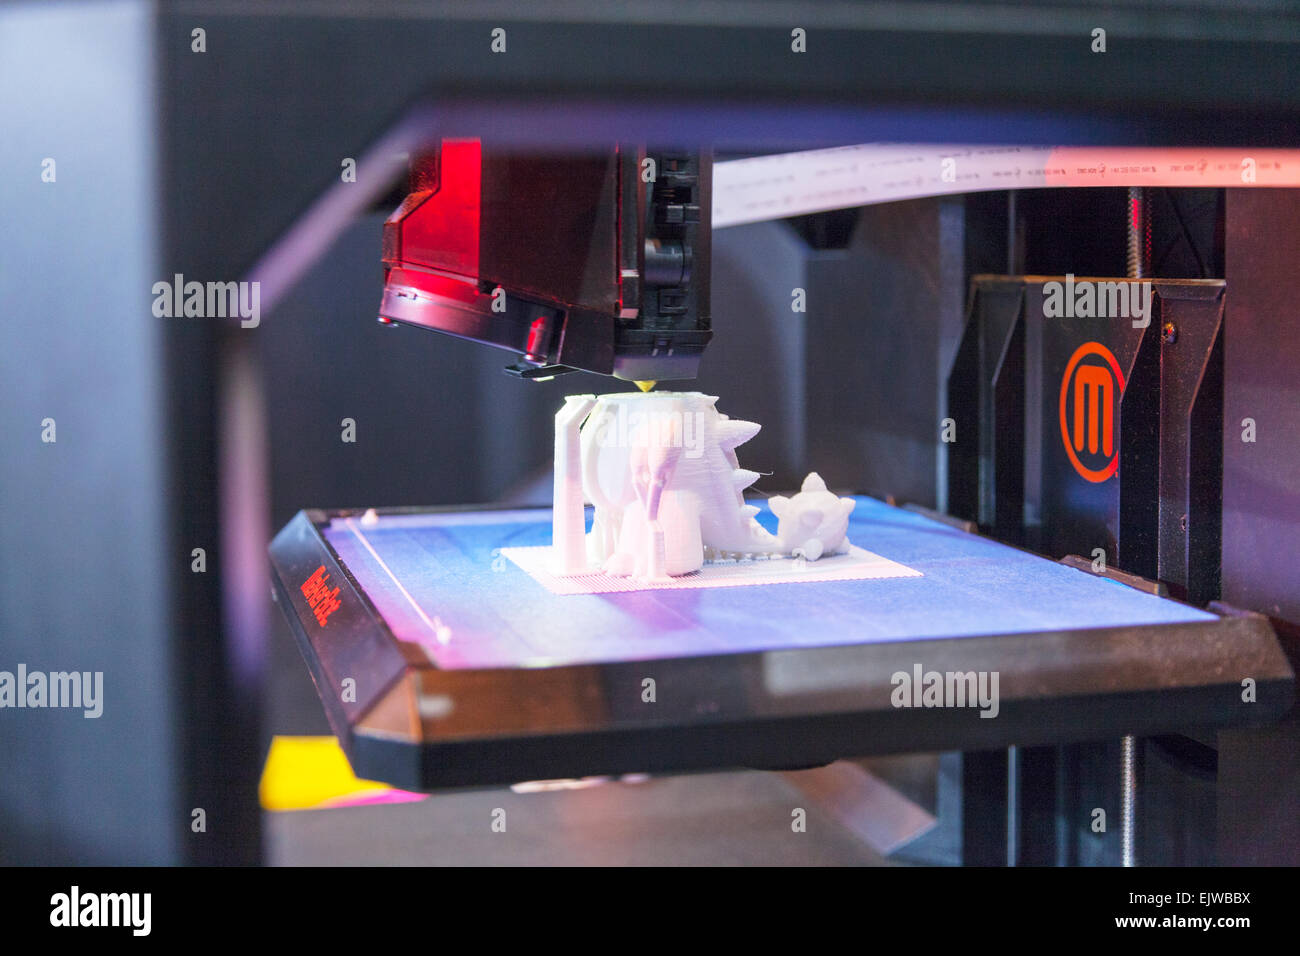 3d printer making plastic model printing machine working three dimensional item for medical use usage uses future - Stock Image